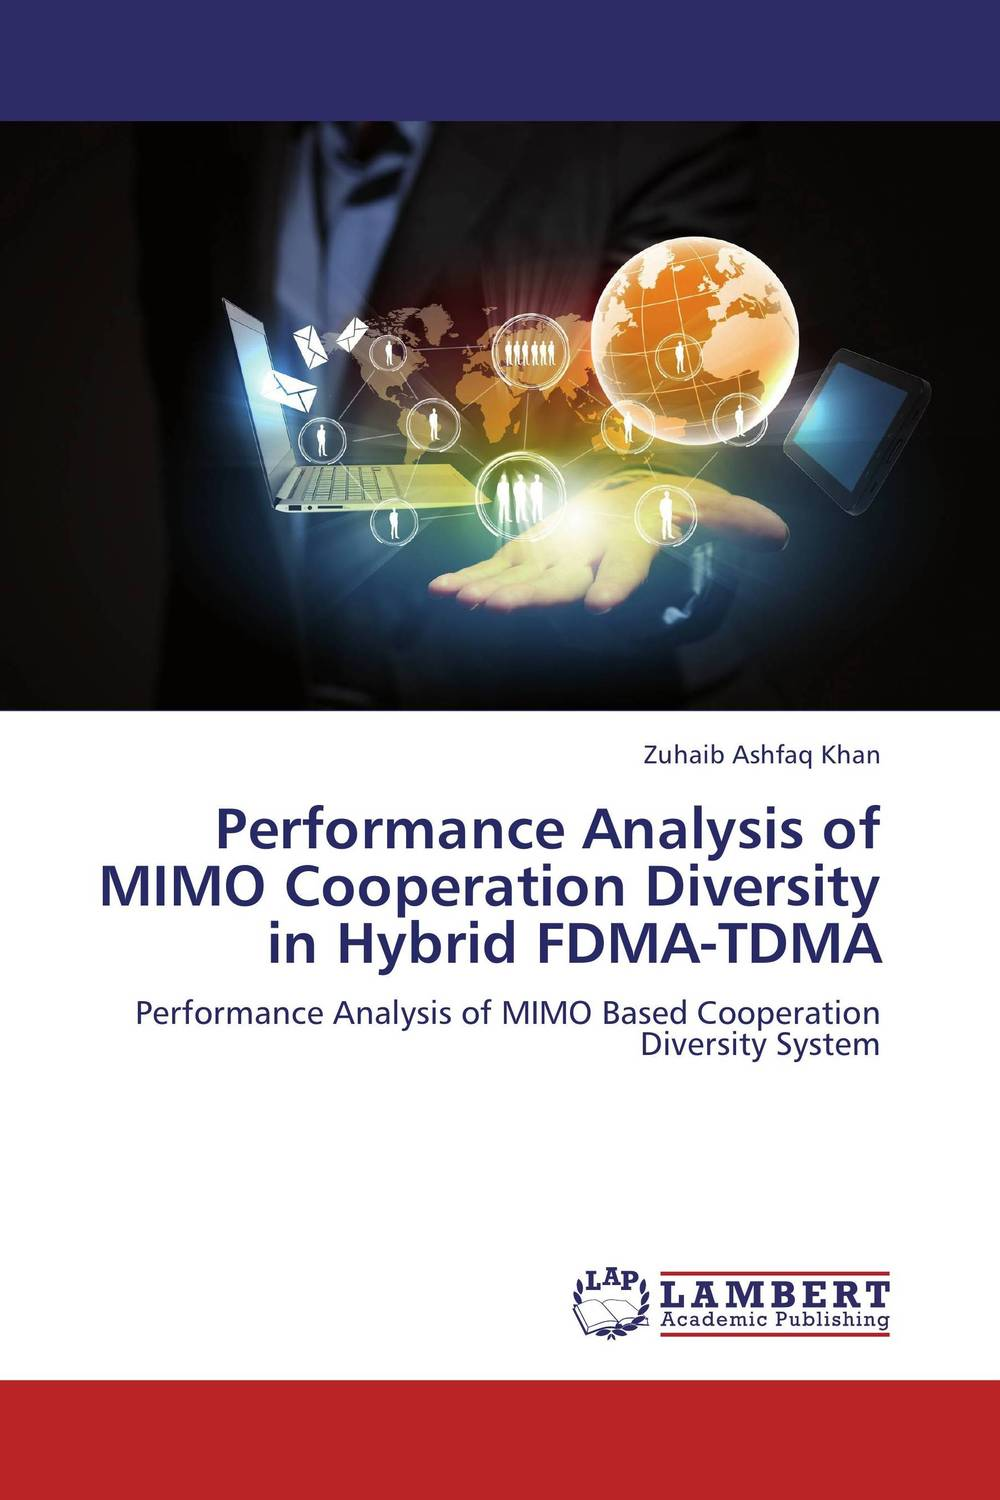 Performance Analysis of MIMO Cooperation Diversity in Hybrid FDMA-TDMA